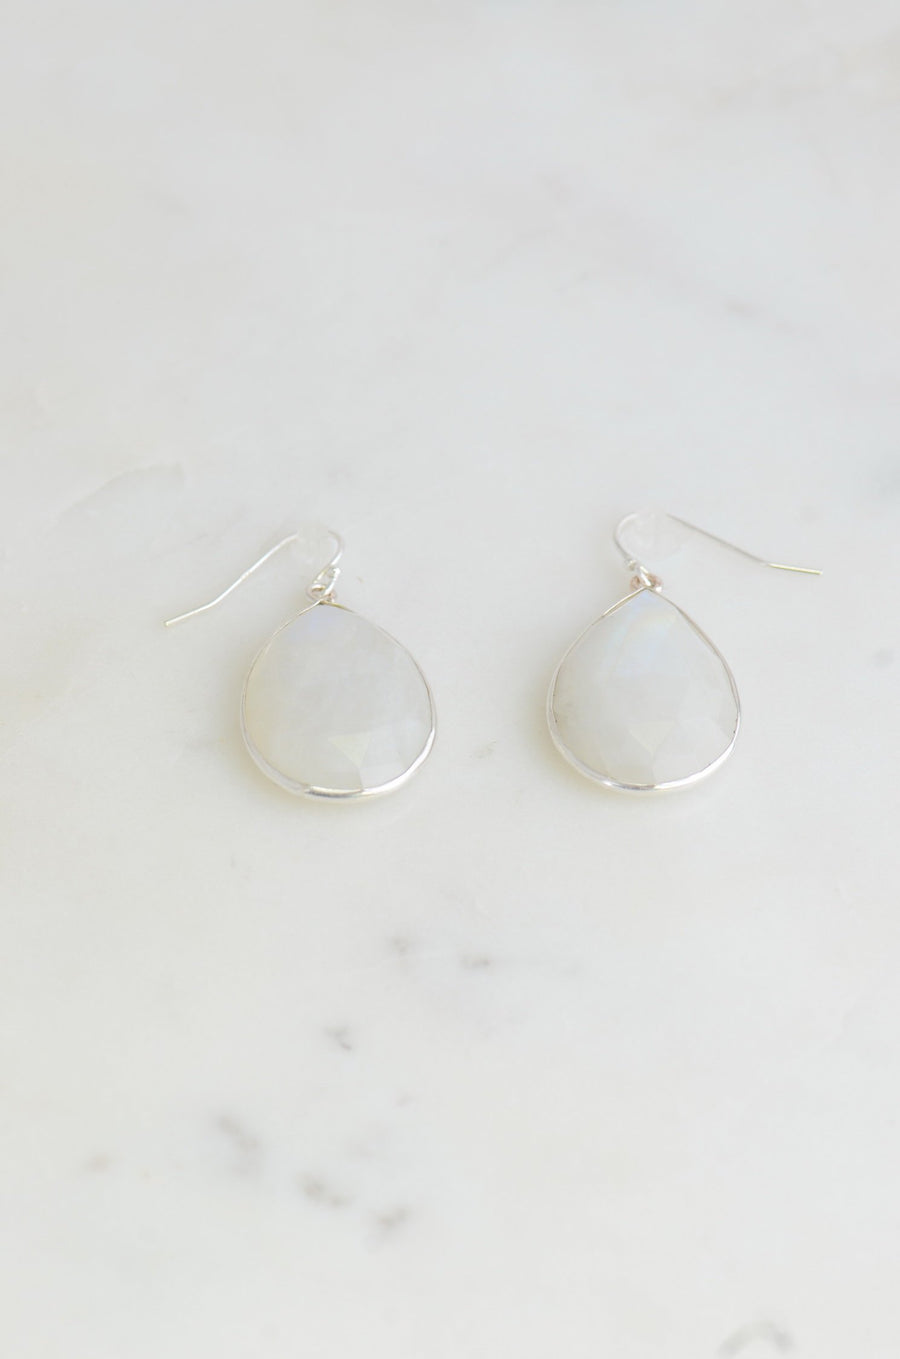 Valentine's Gift, Moonstone Earring, Rainbow Moonstone earring, Sterling Silver Earring, Simple Silver earring, June Birthstone Earring